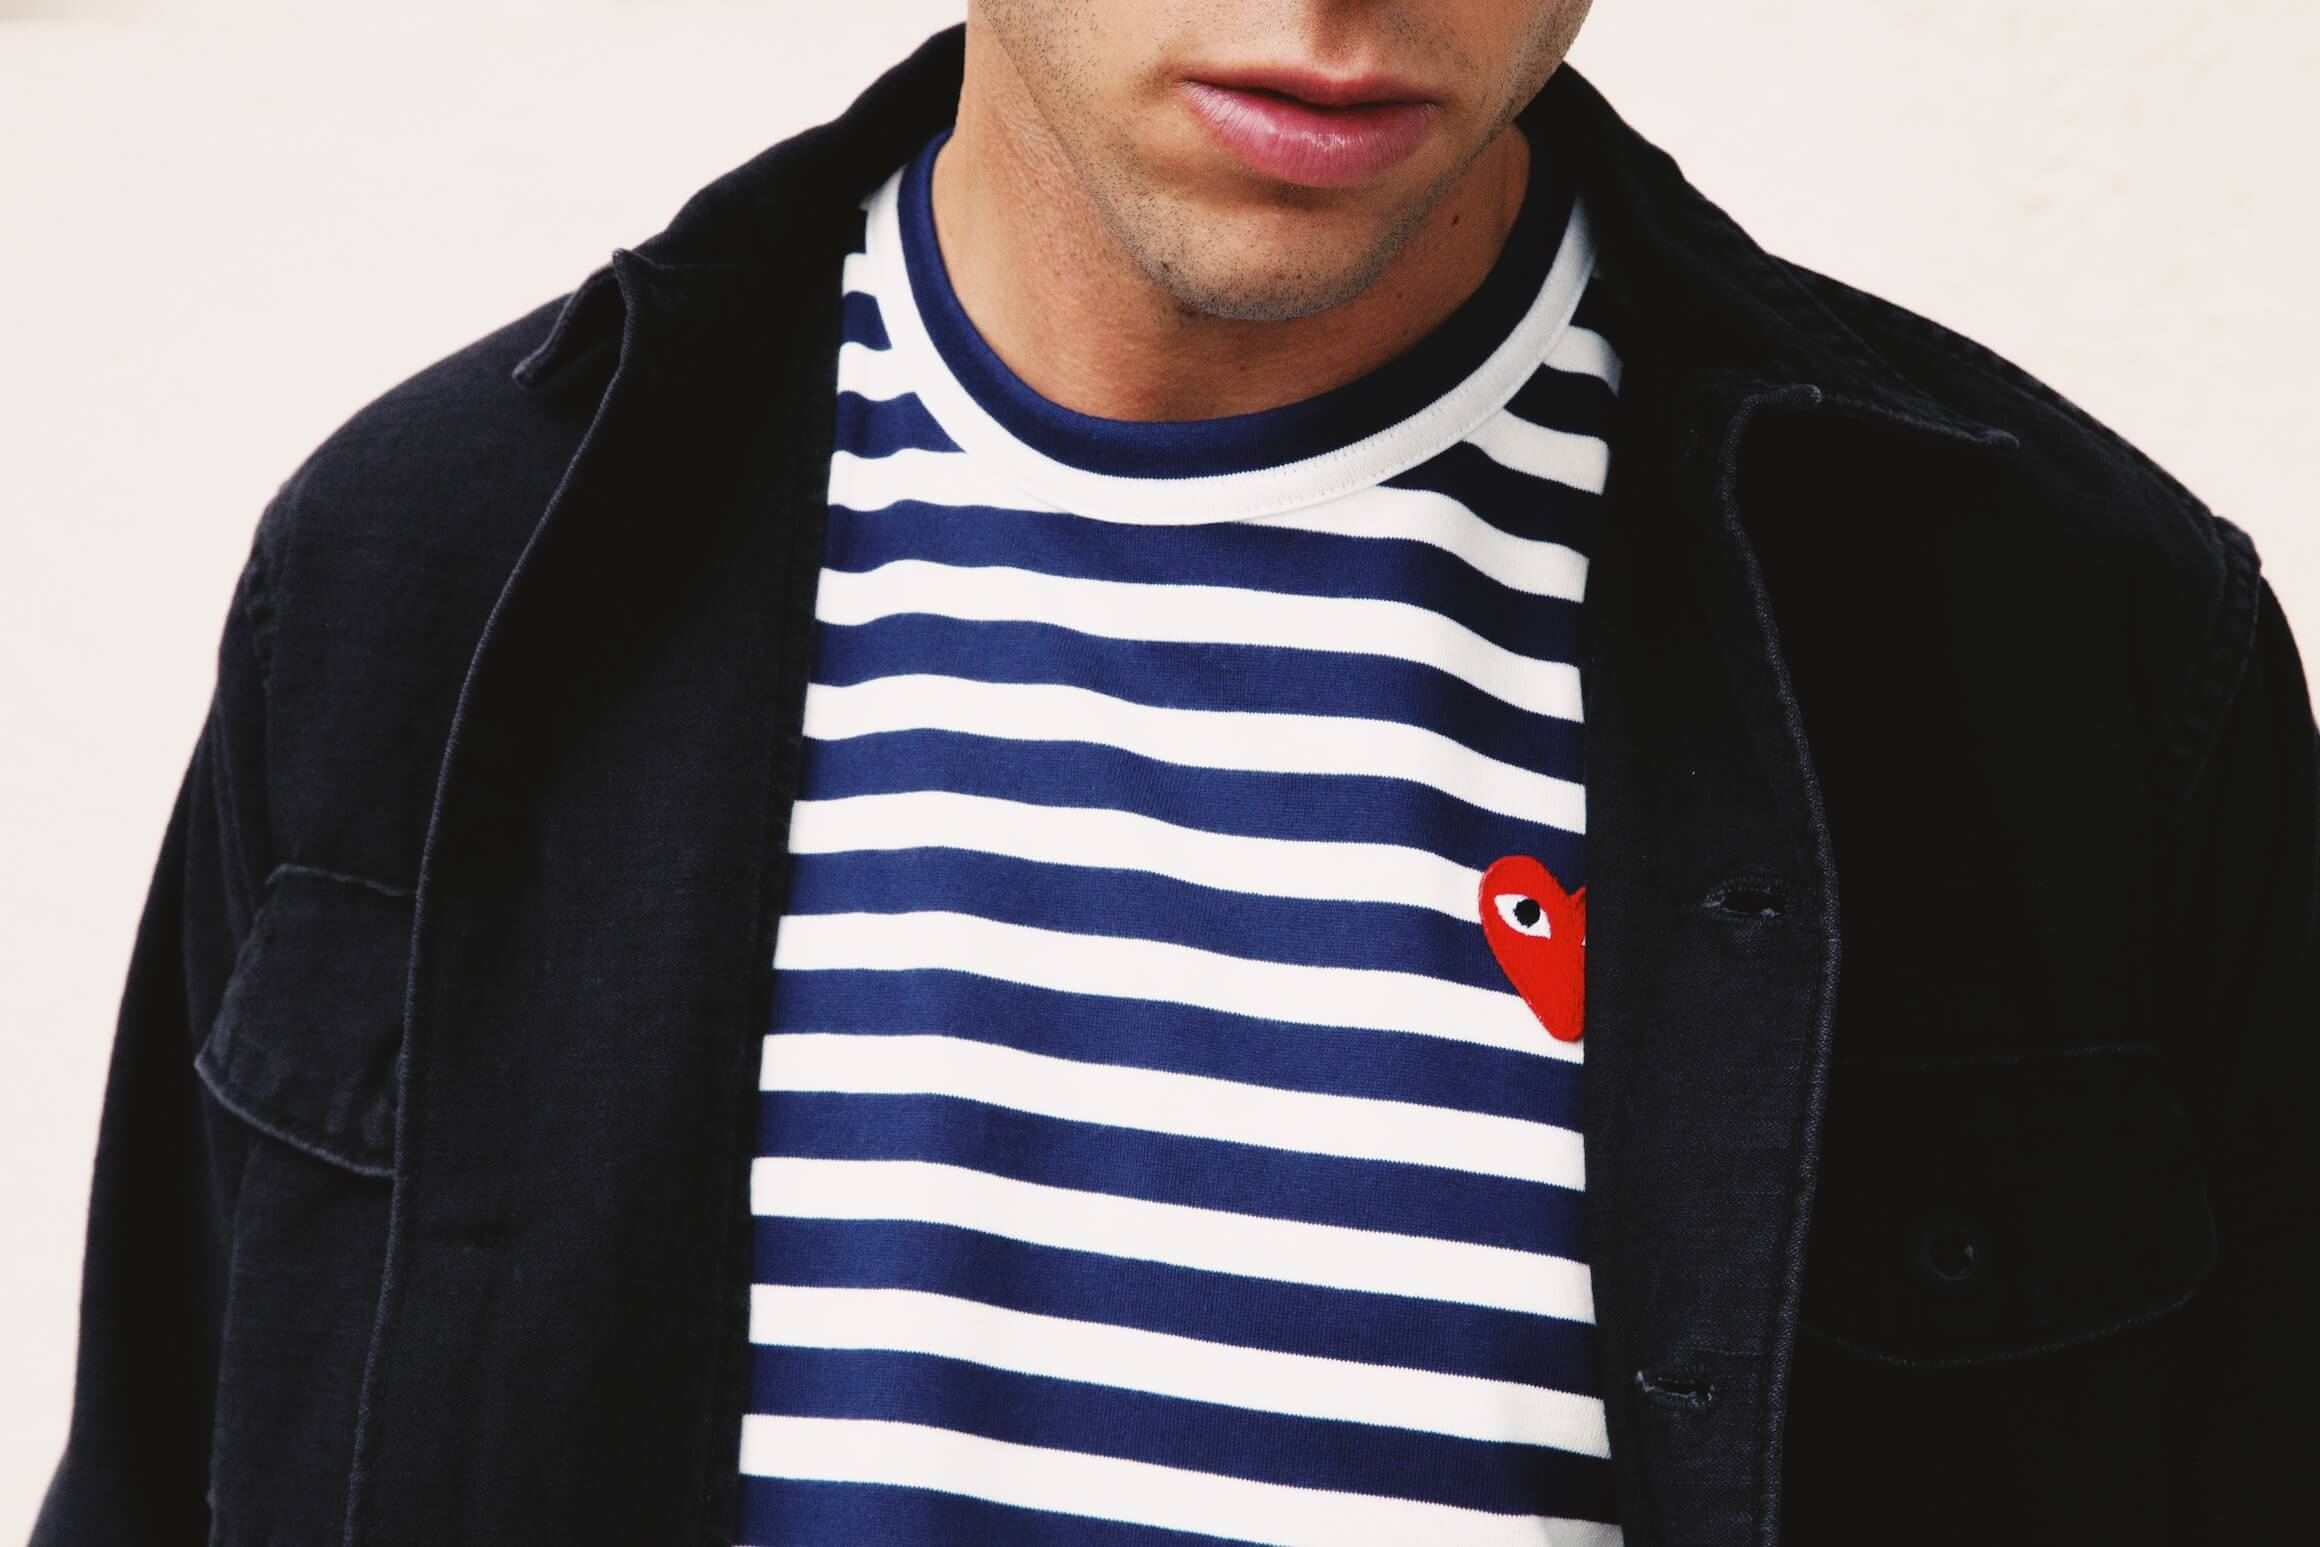 orslow u.s. army shirt, comme des garcons play red heart striped t-shirt on body